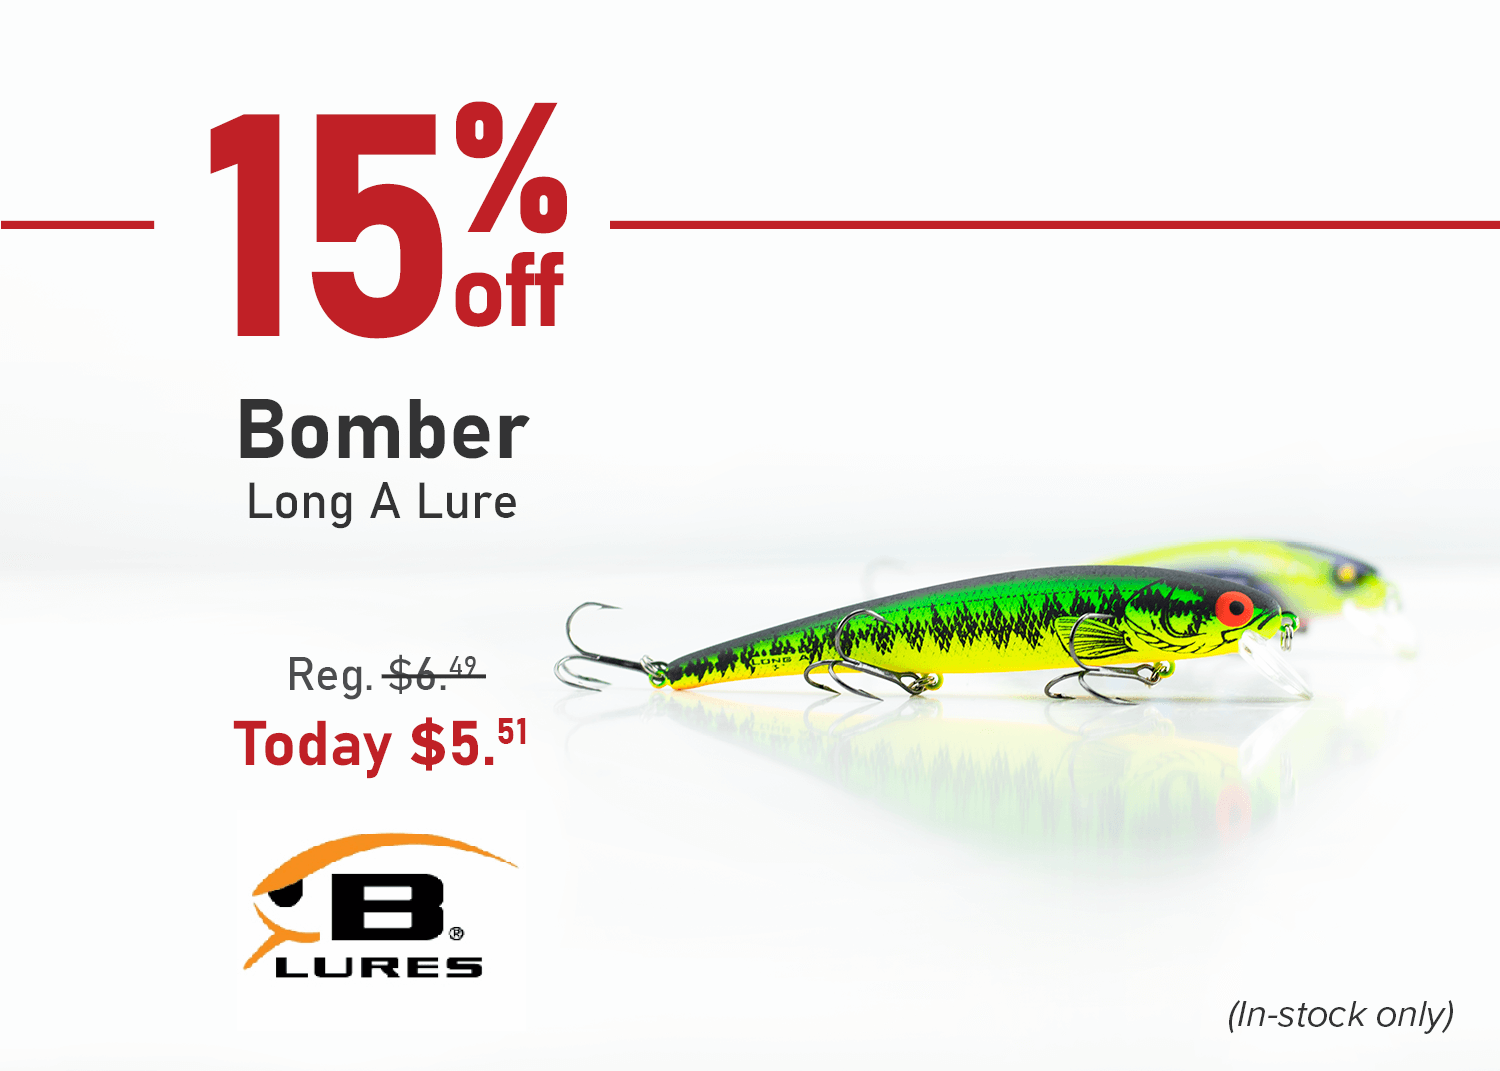 Save 15% on Bomber Long A Lure